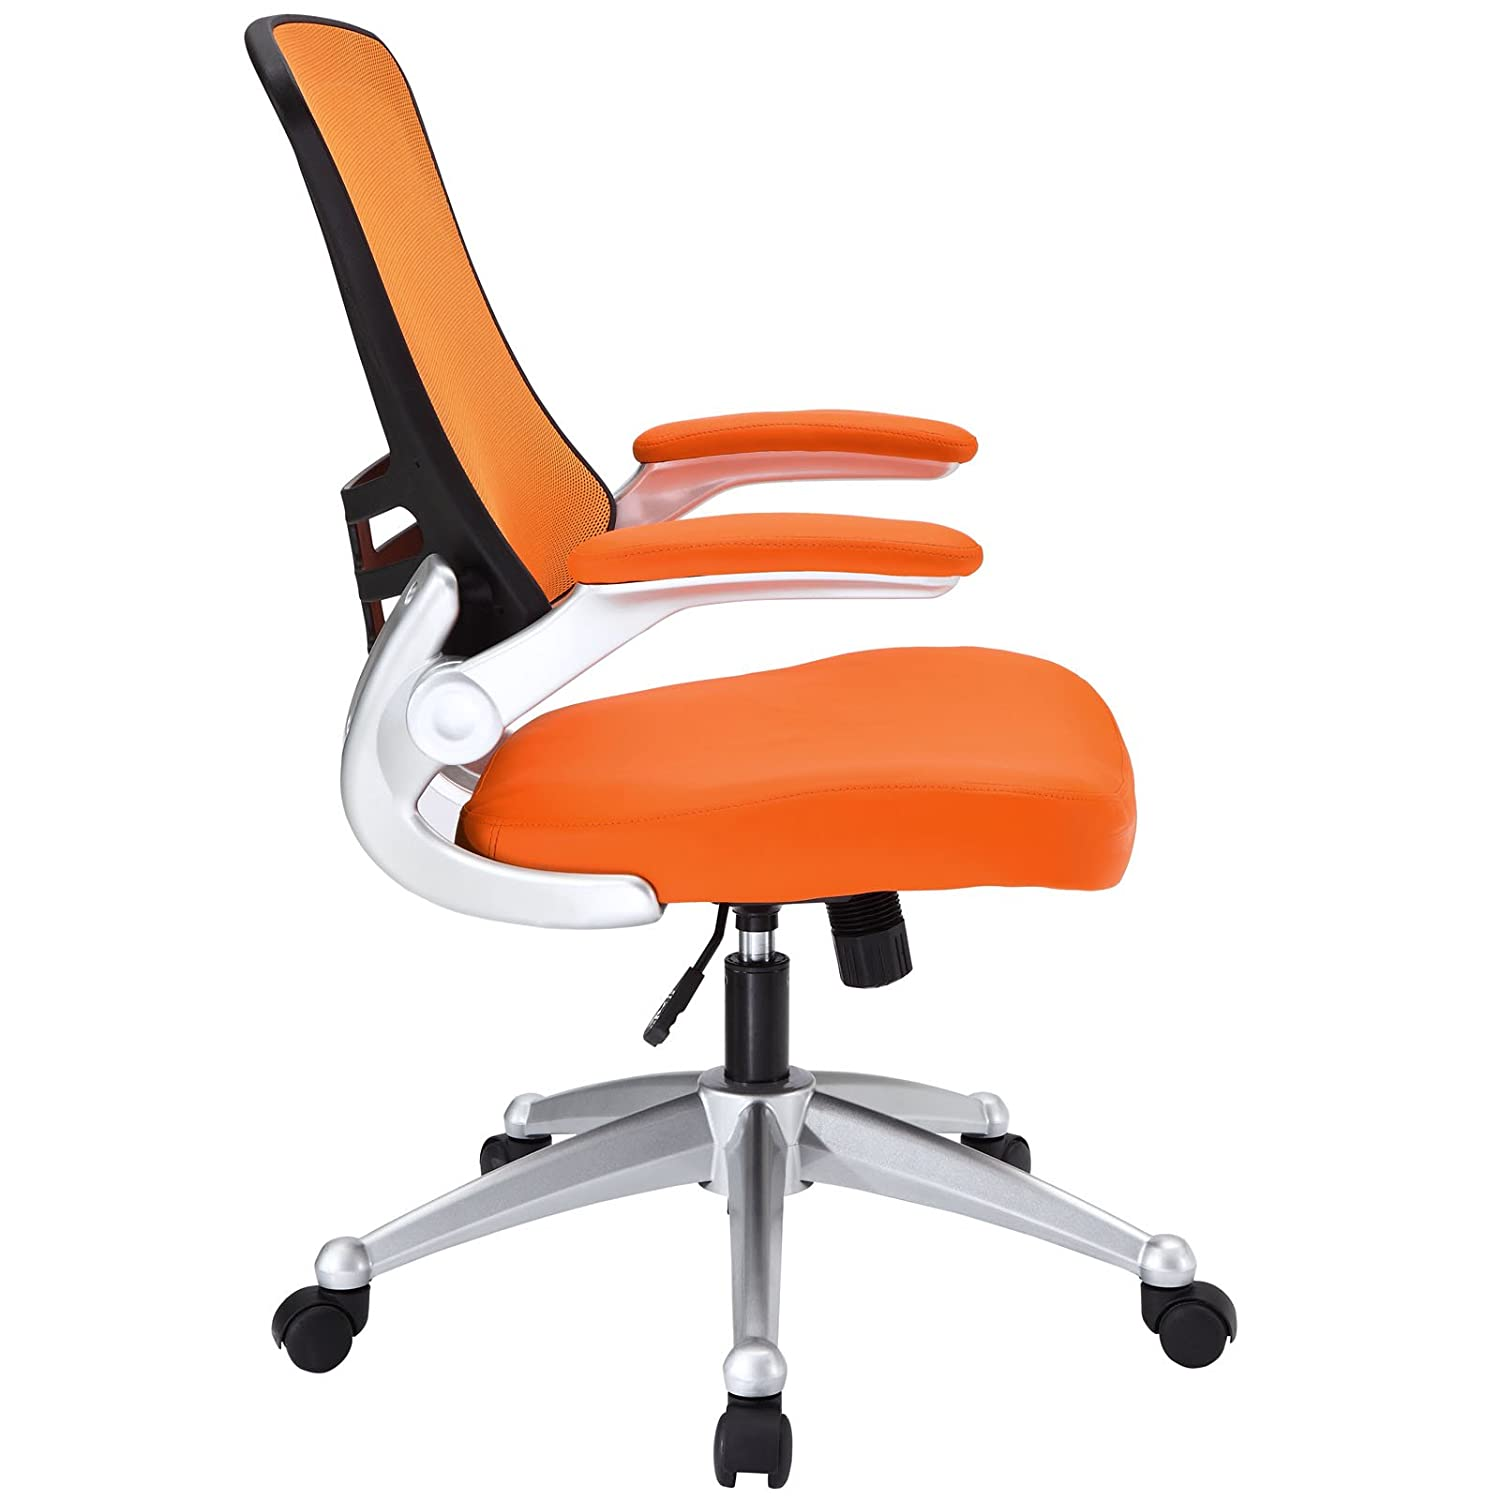 eei office whi pillow modway in stores chair white mw beyond